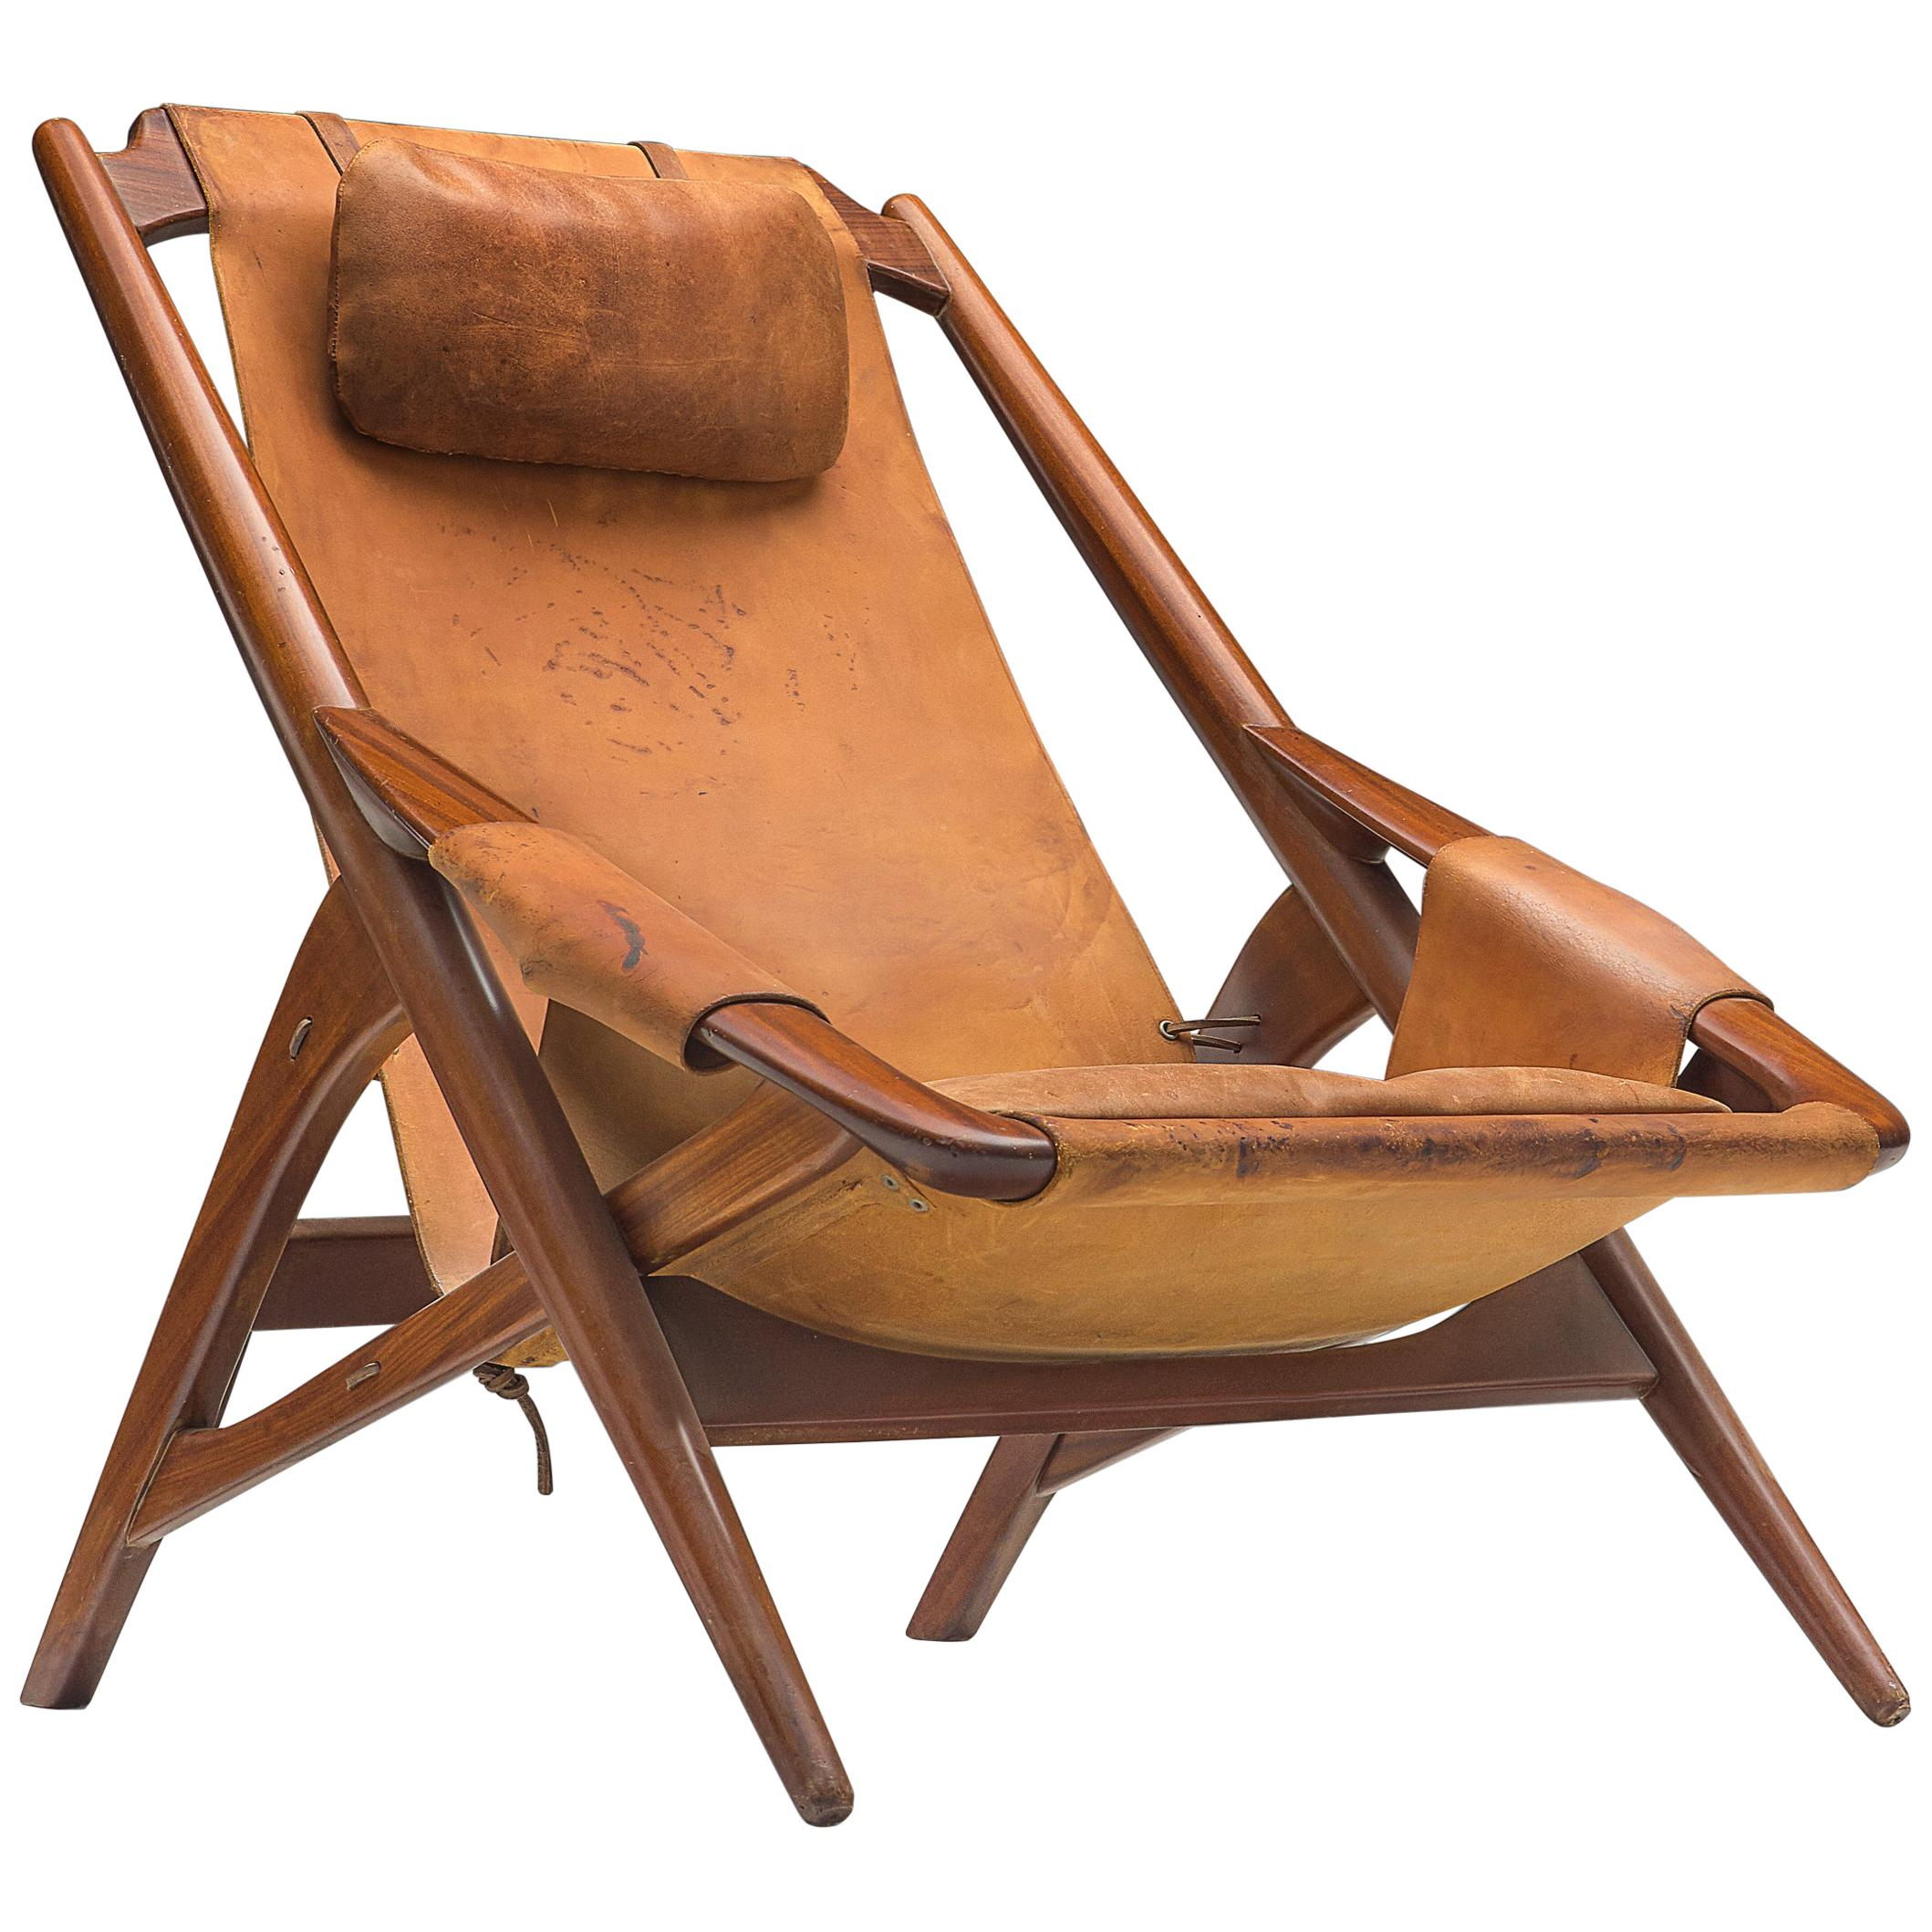 W. Andersag Lounge Chair in Patinated Cognac Leather